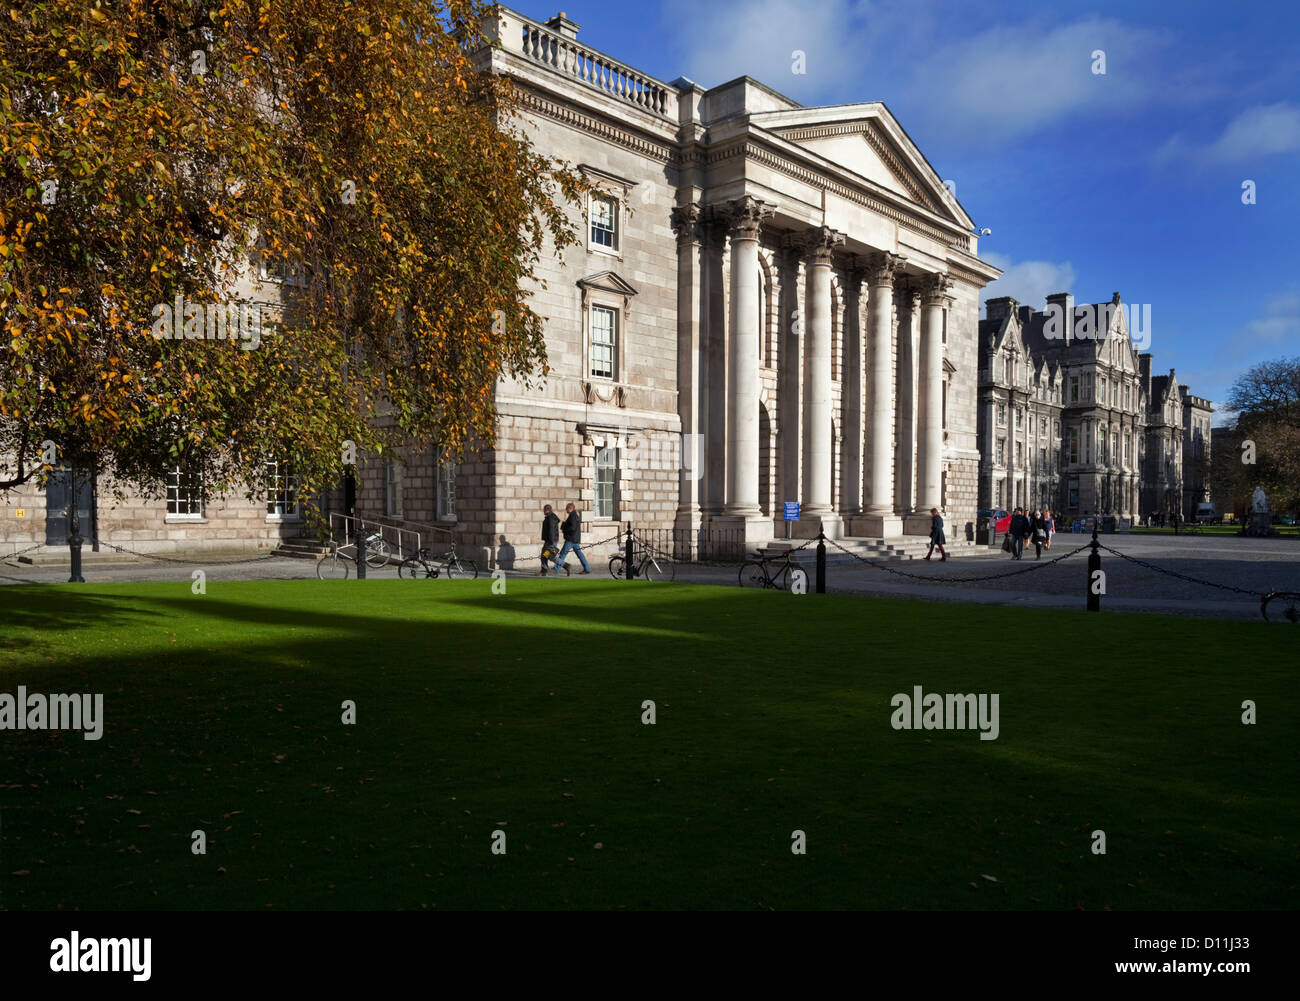 The University Chapel, Library Square, Trinity College Dublin founded in 1591, Ireland - Stock Image